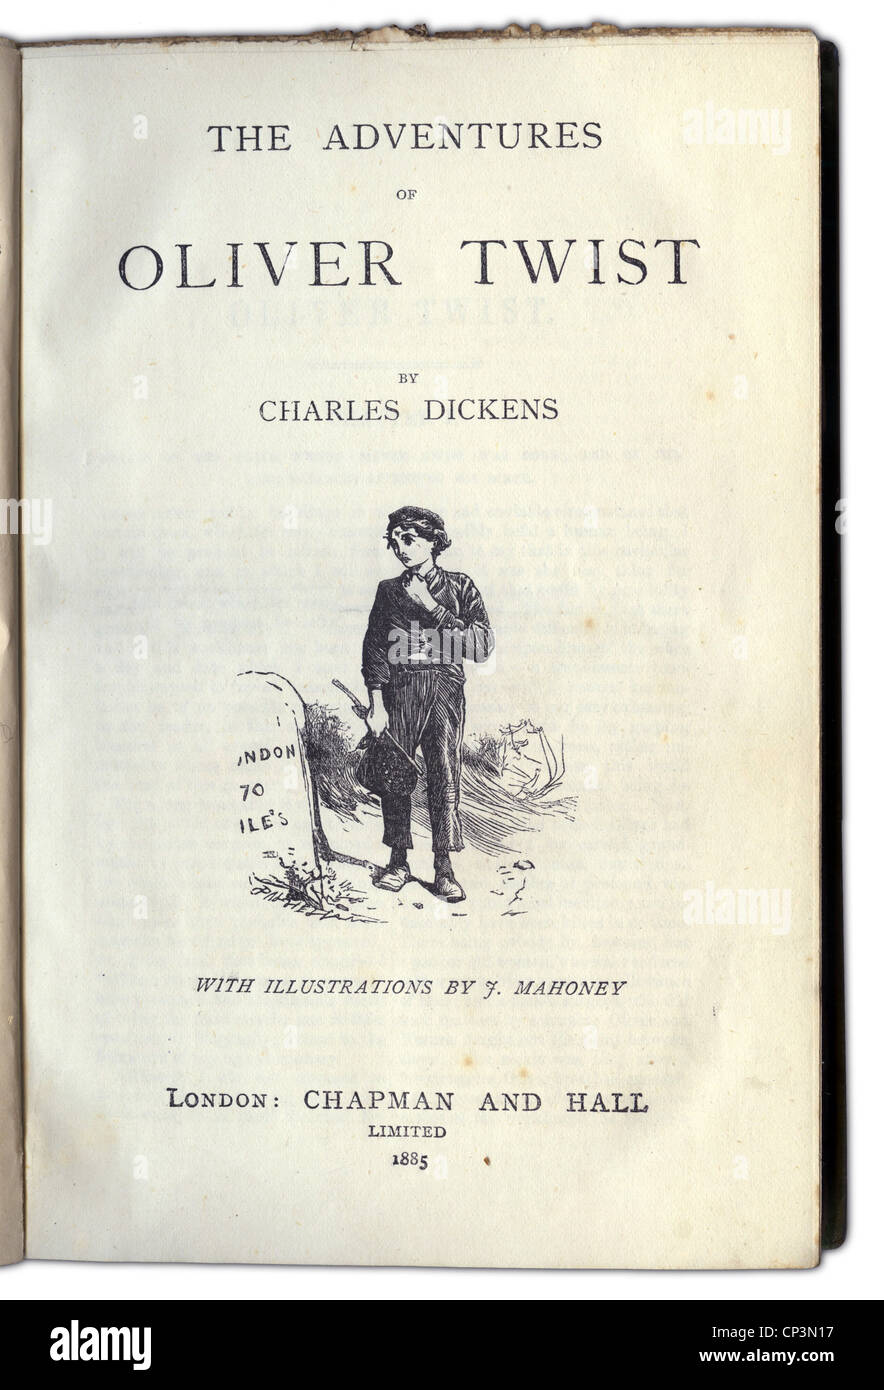 a literary analysis of david copperfield and oliver twist by charles dickens David copperfield (penguin classics) [charles  charles dickens was born  dickens was hired to edit bentley's miscellany where his novel oliver twist was.